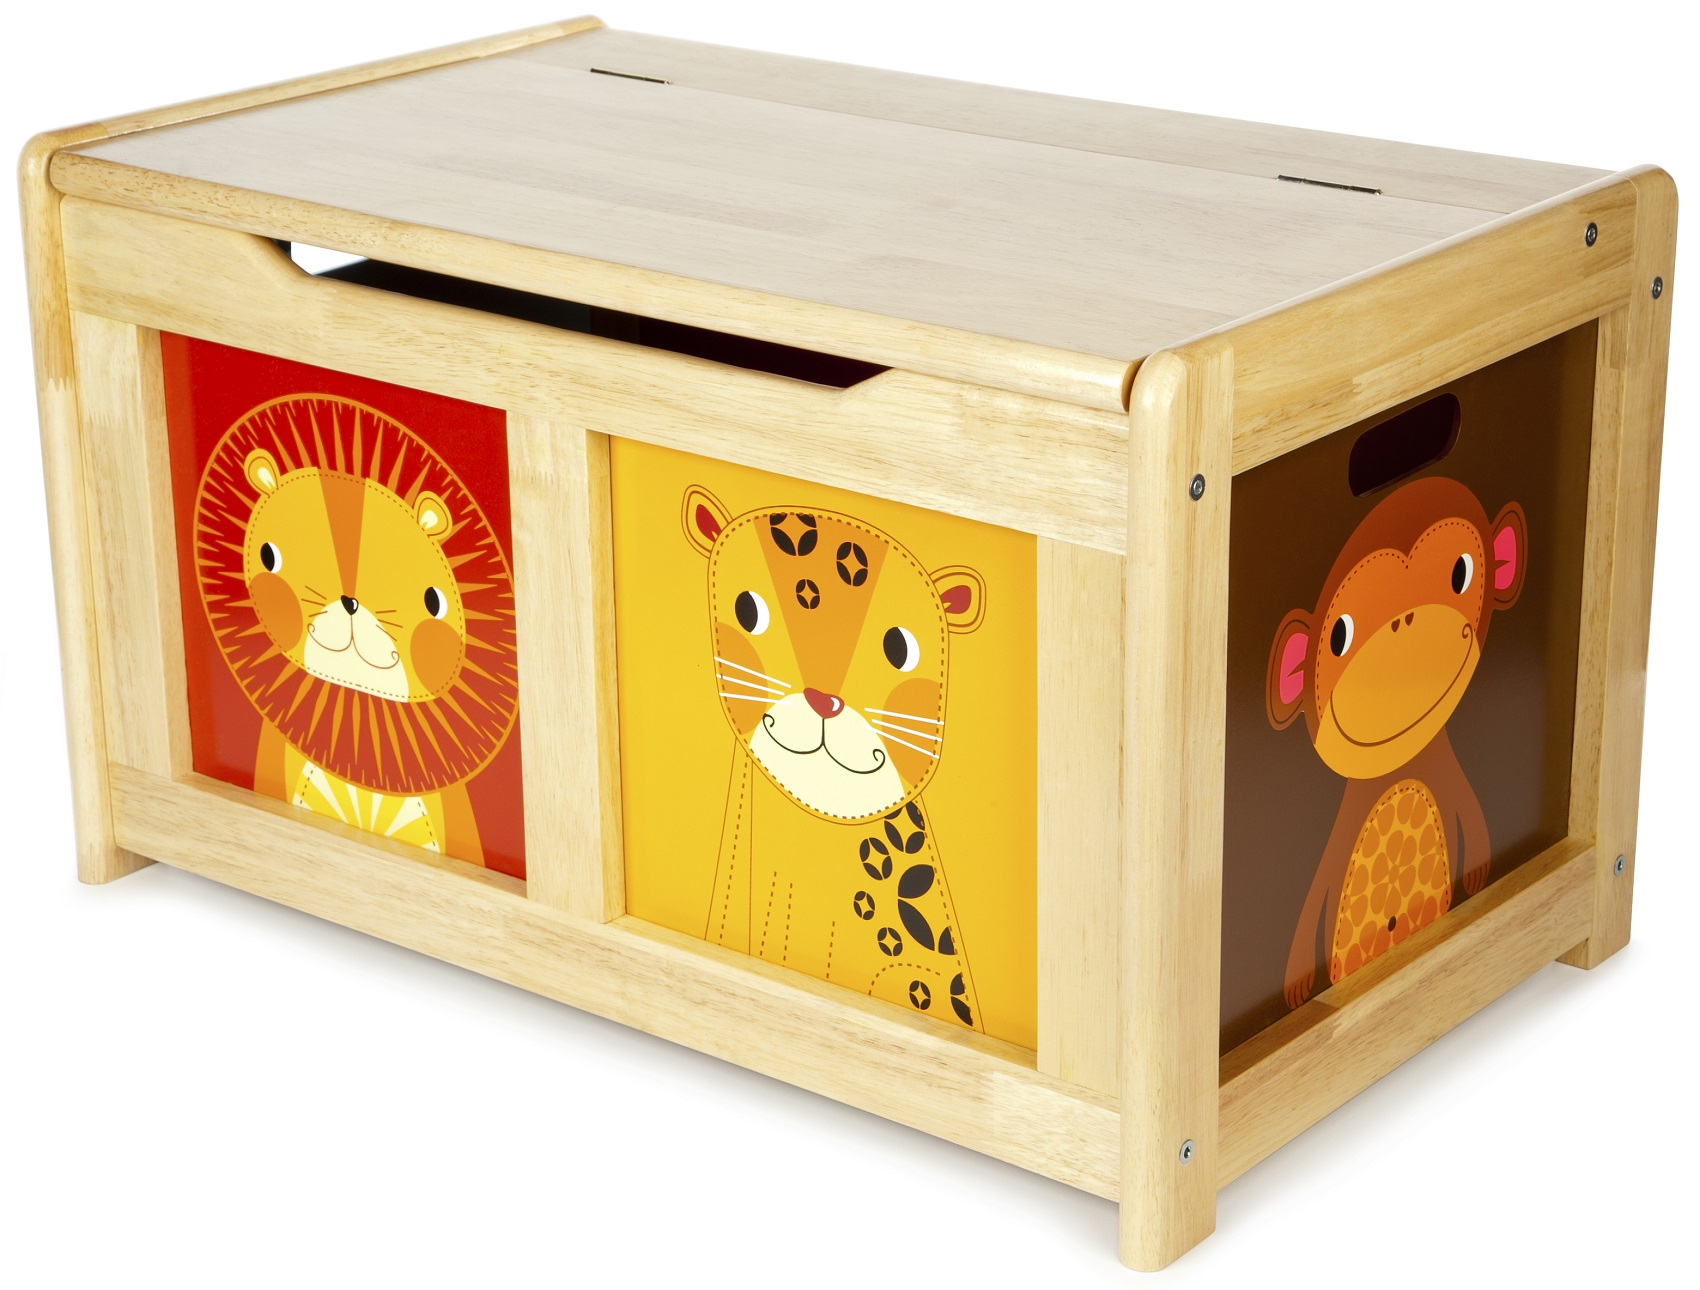 Best Toy Boxes And Chests For Kids : Wooden toys quality for children woodentoyshop